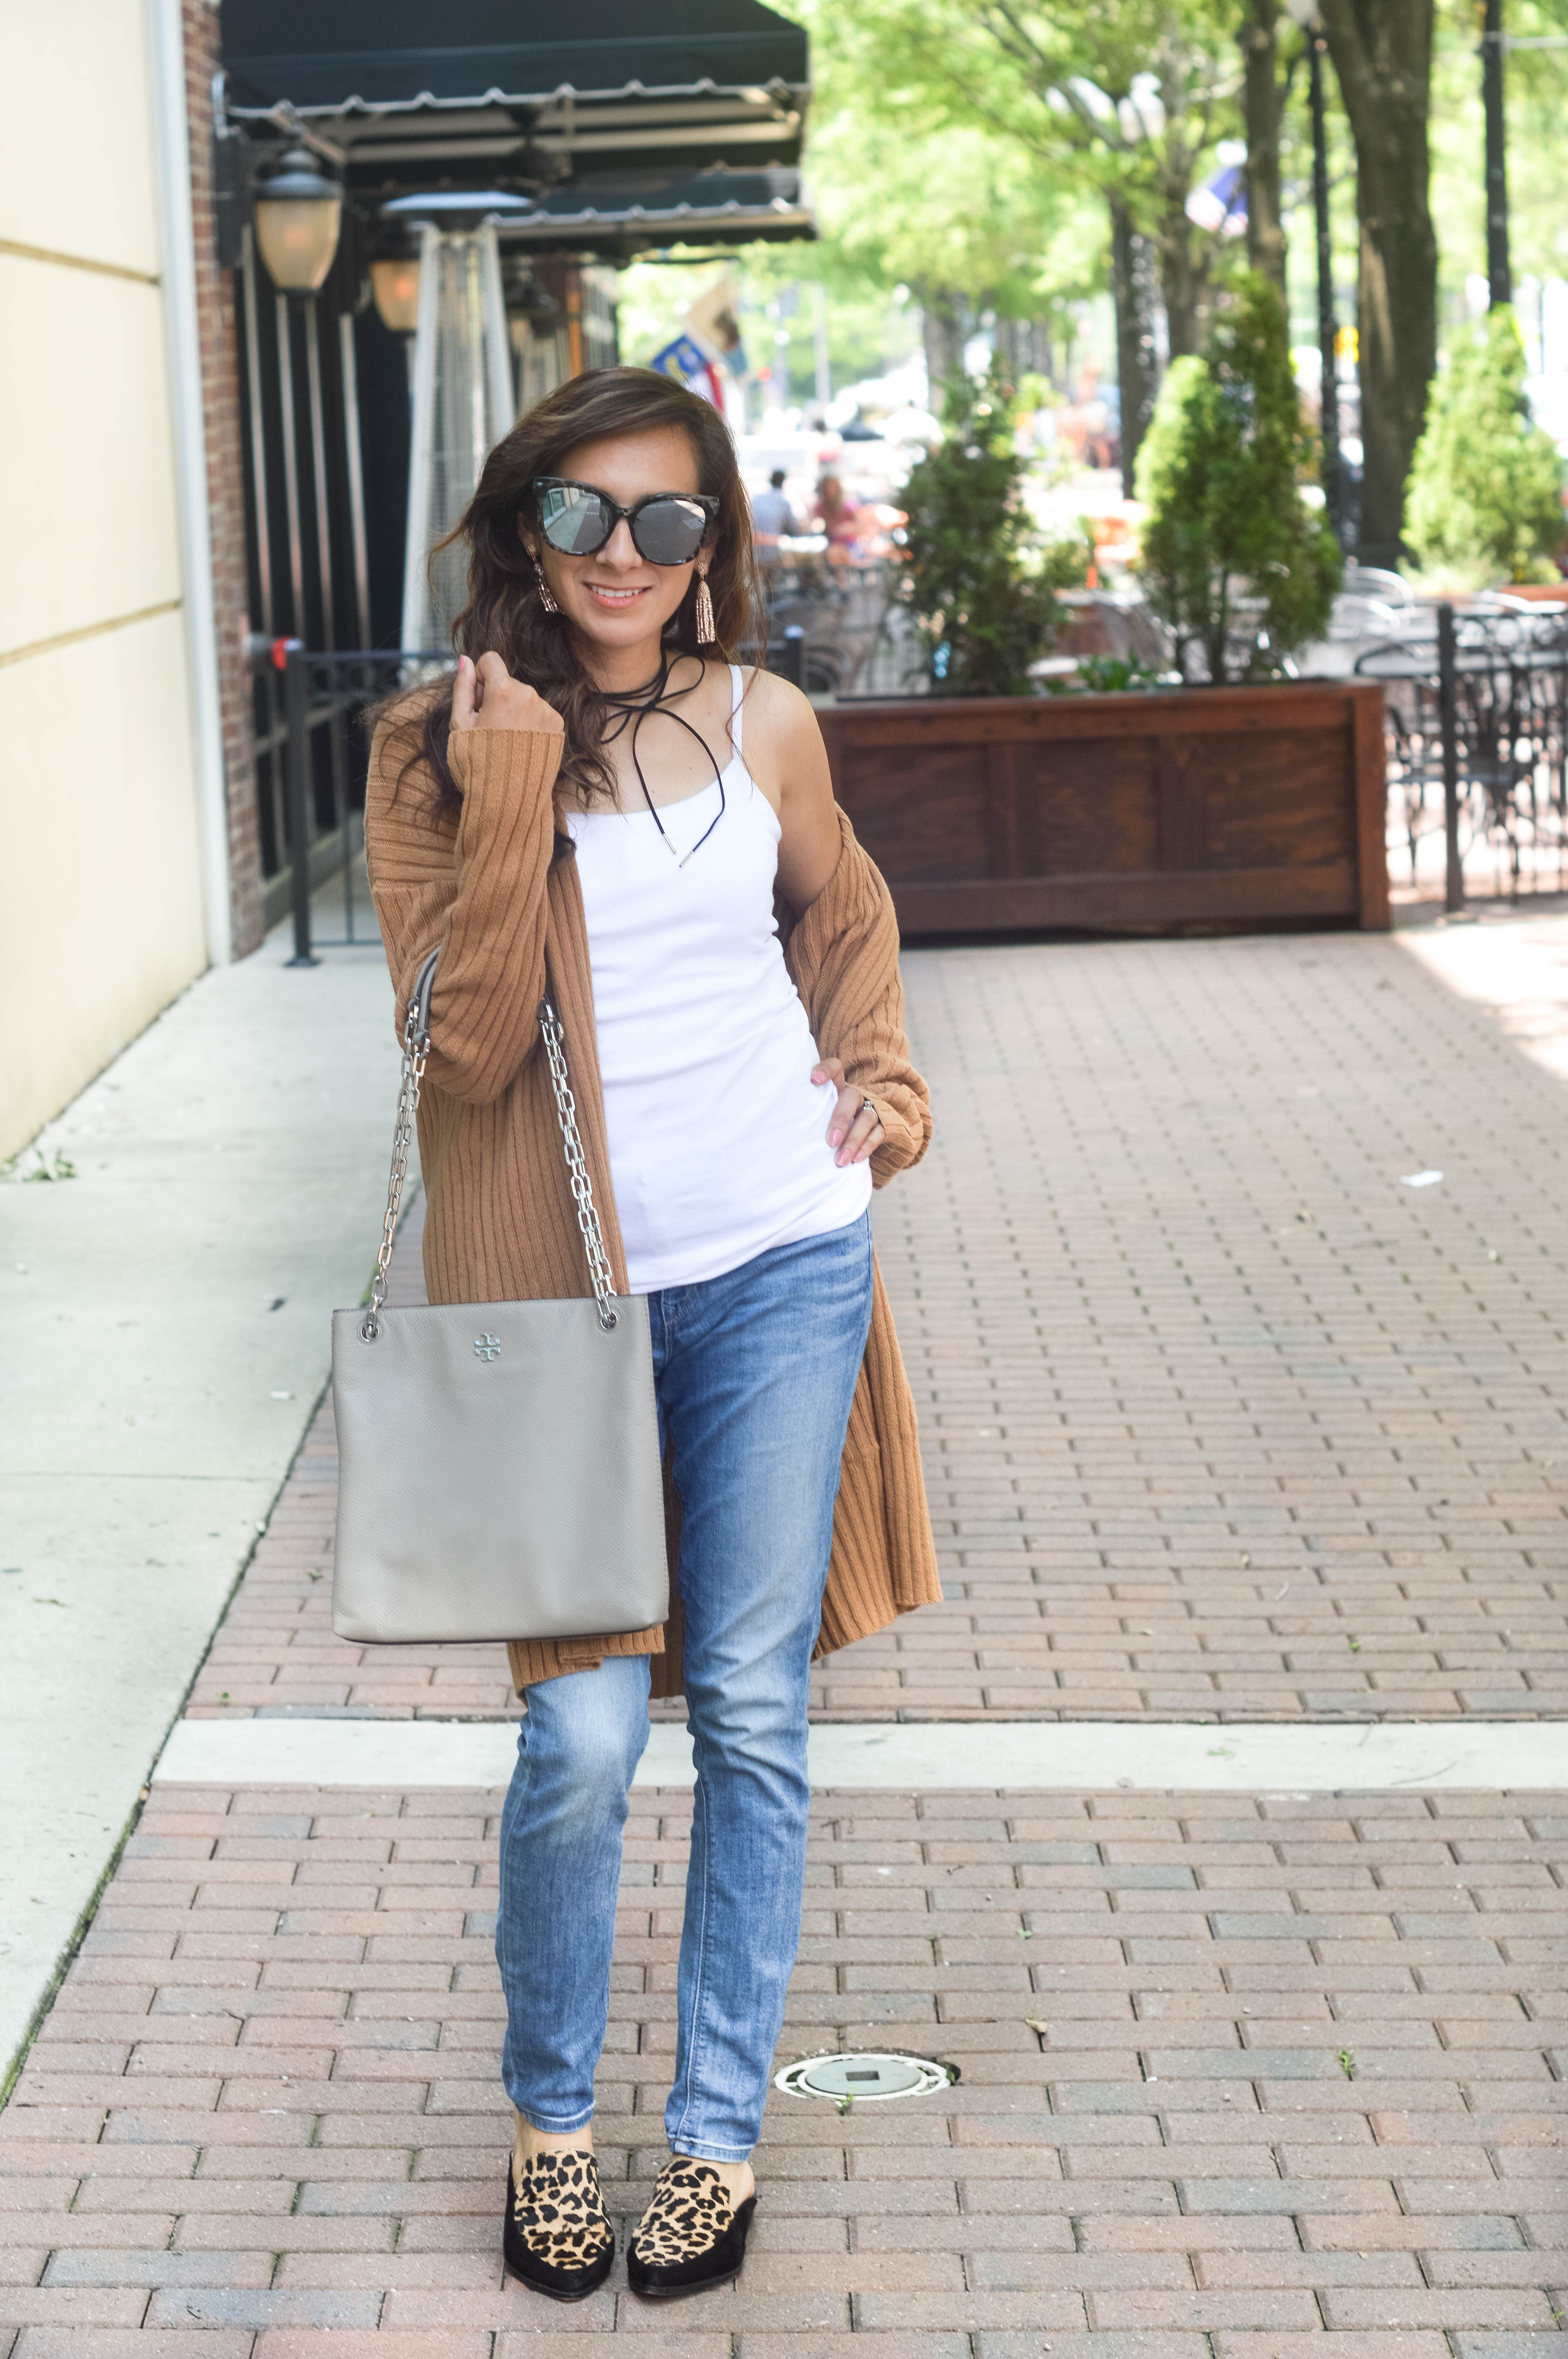 Fall Outfits, cozy cardigan